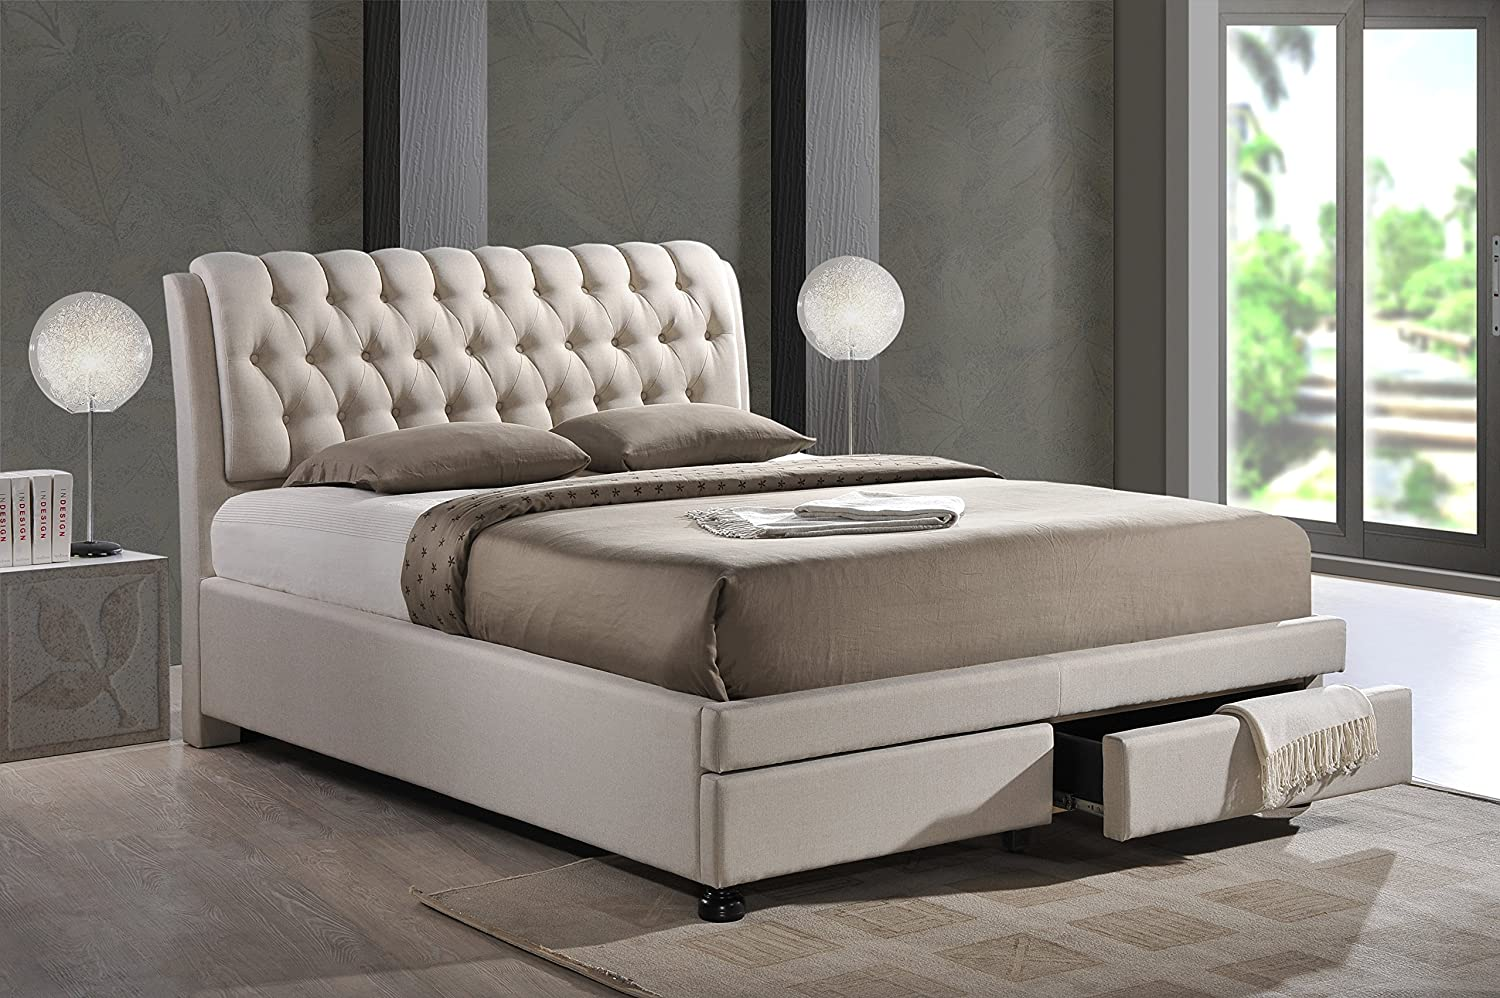 mattresses with home frame drawers pin furnishings brown sofas ikea appliances queen beds black oppdal bed kitchens